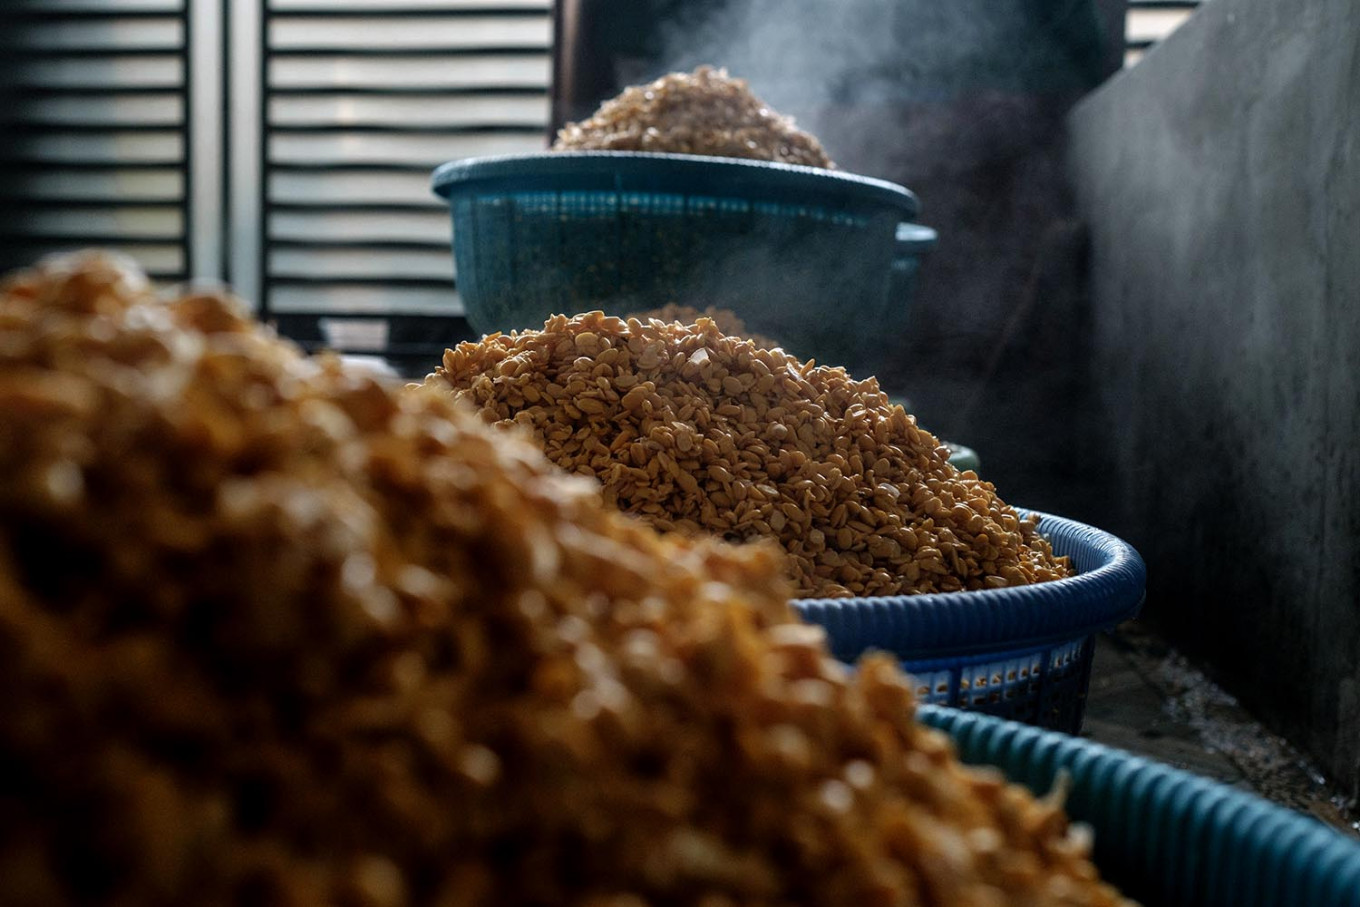 The boiled soybeans are left overnight to reduce their acidity levels. JP/ Anggara Mahendra